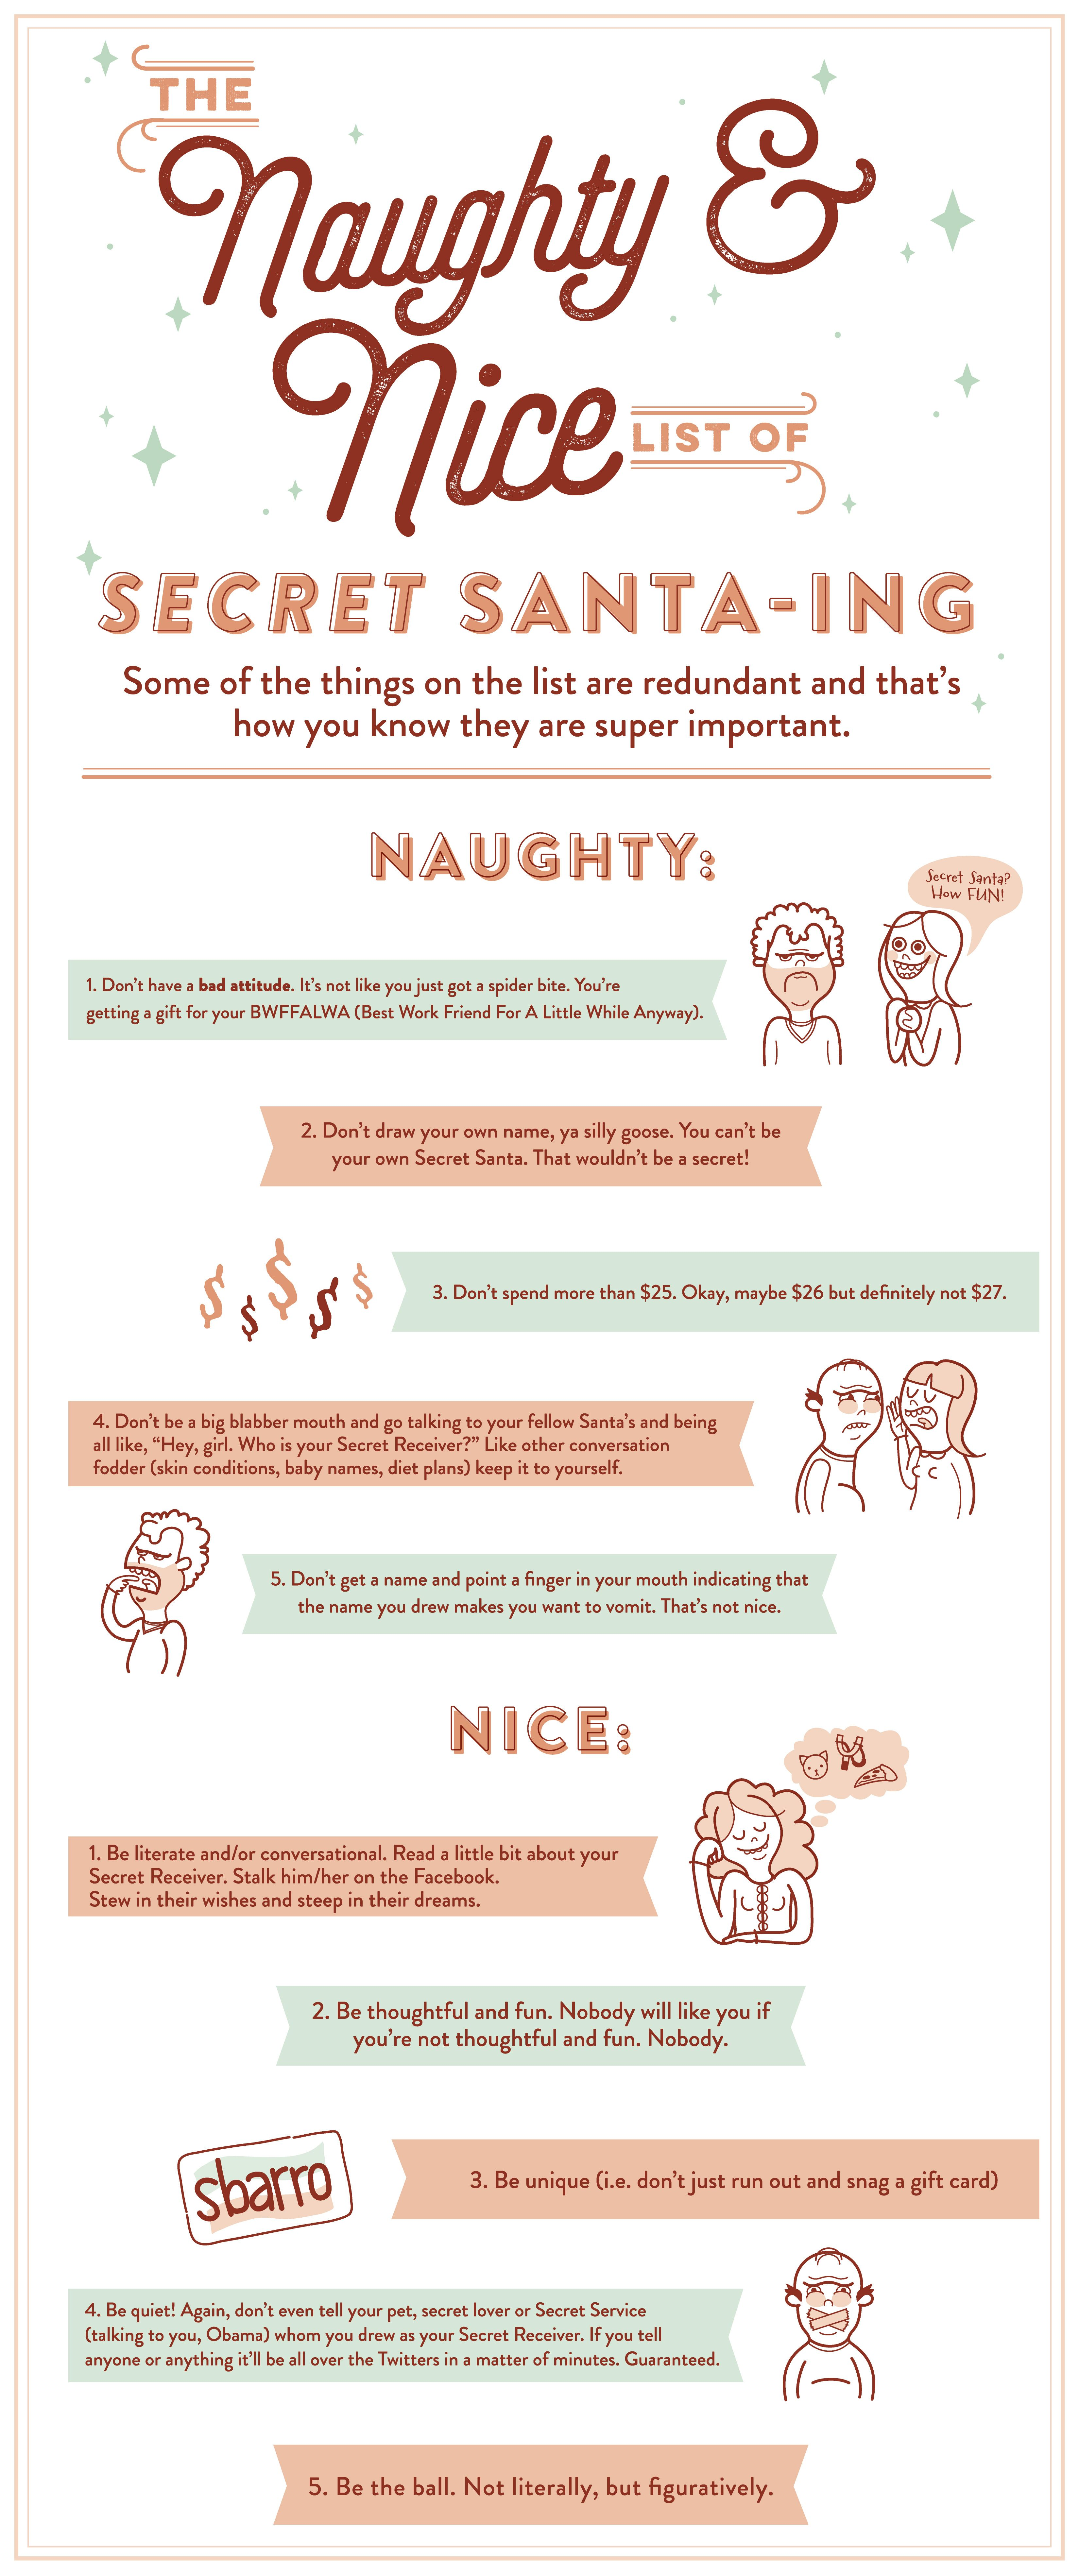 The Naughty and Nice List of Secret Santaing. Rules by